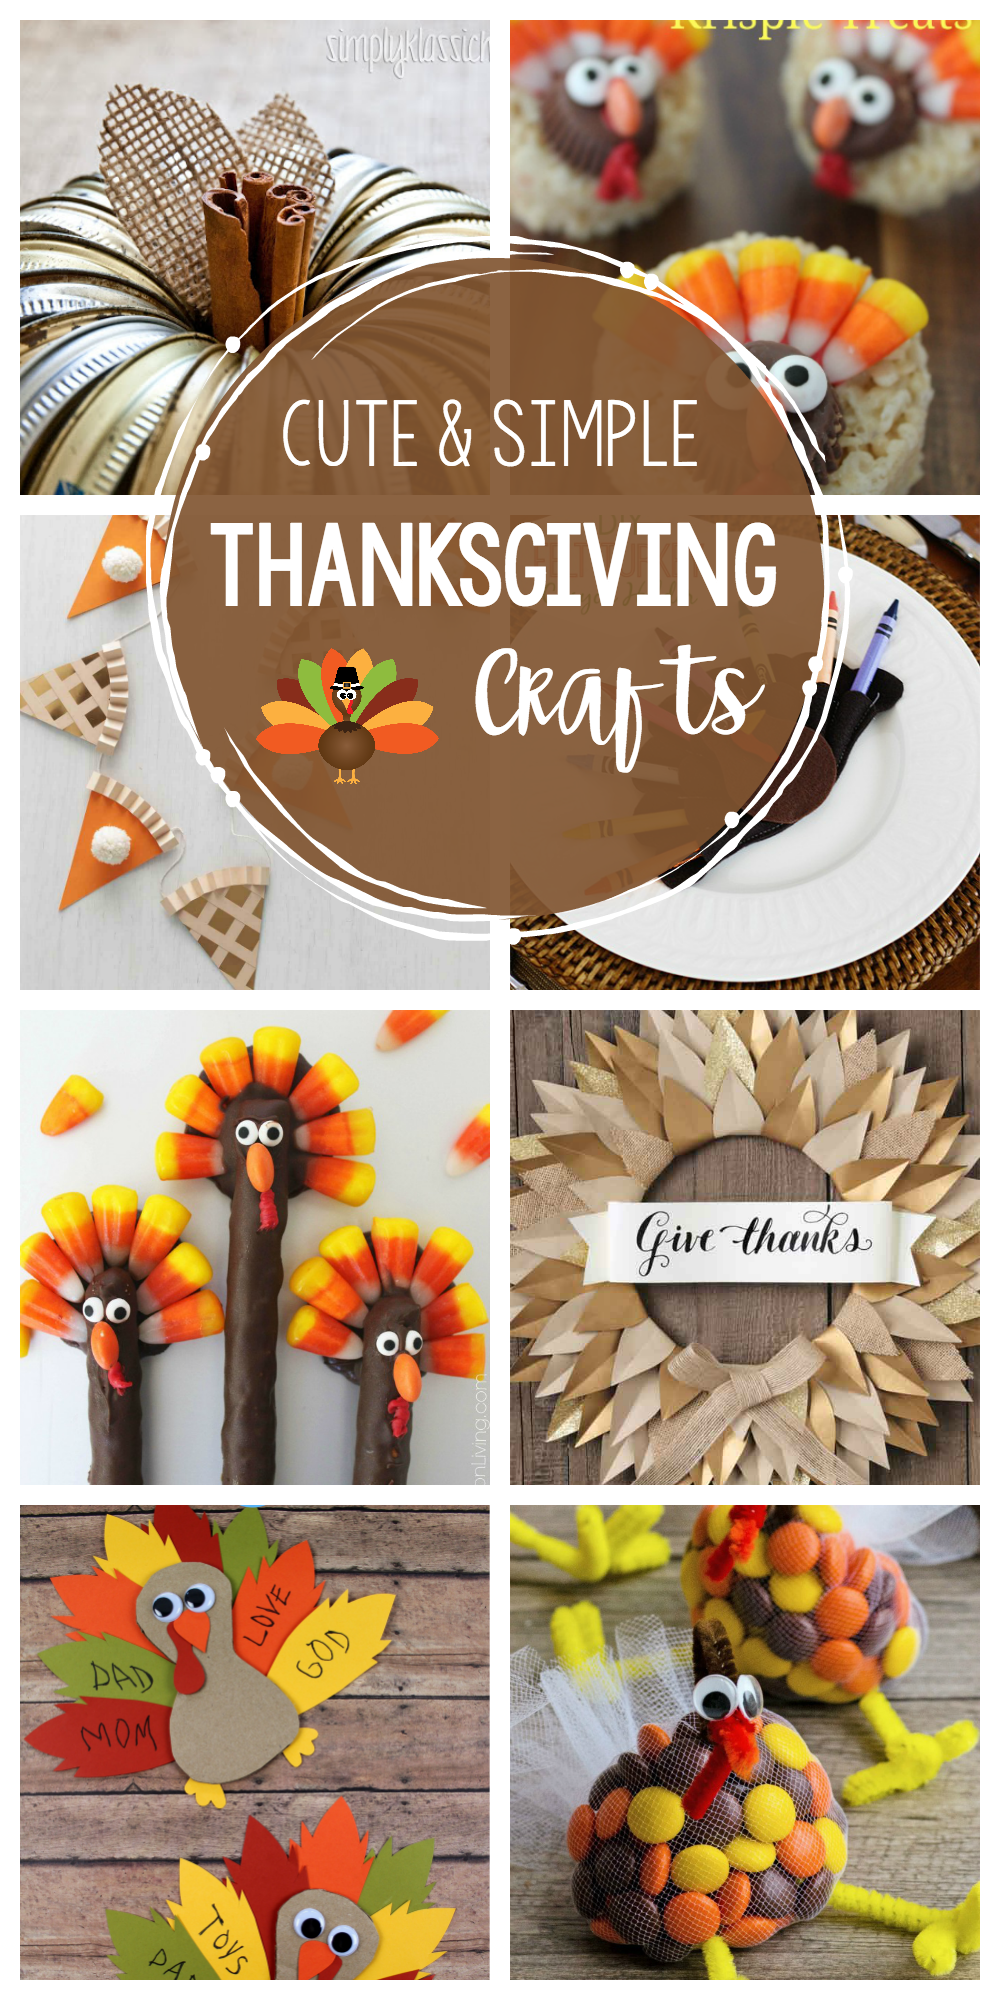 Fun Simple Thanksgiving Crafts To Make This Year Crazy Little